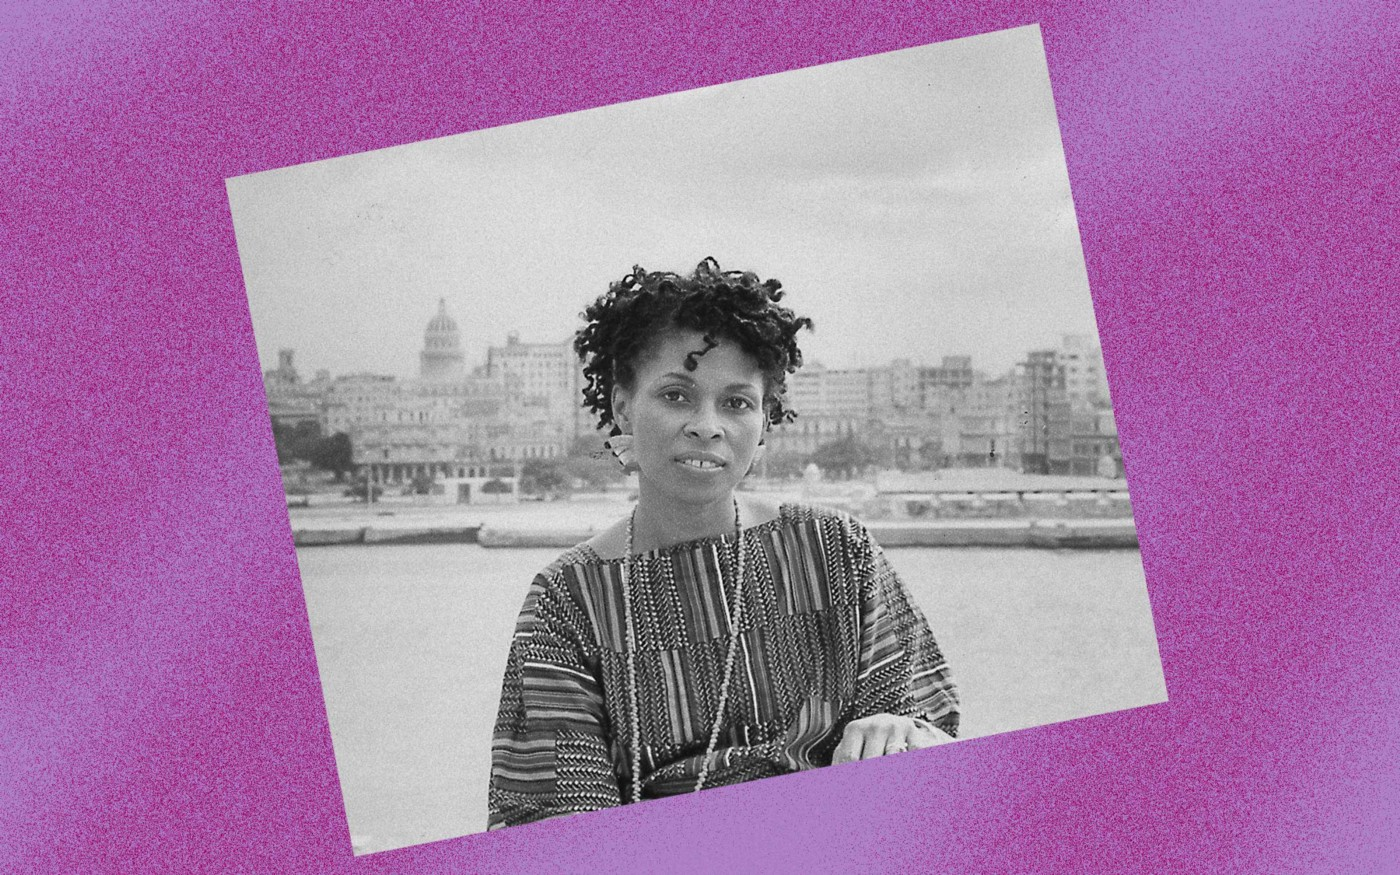 Photo illustration of a black-and-white photo of Assata Shakur against a violet background.